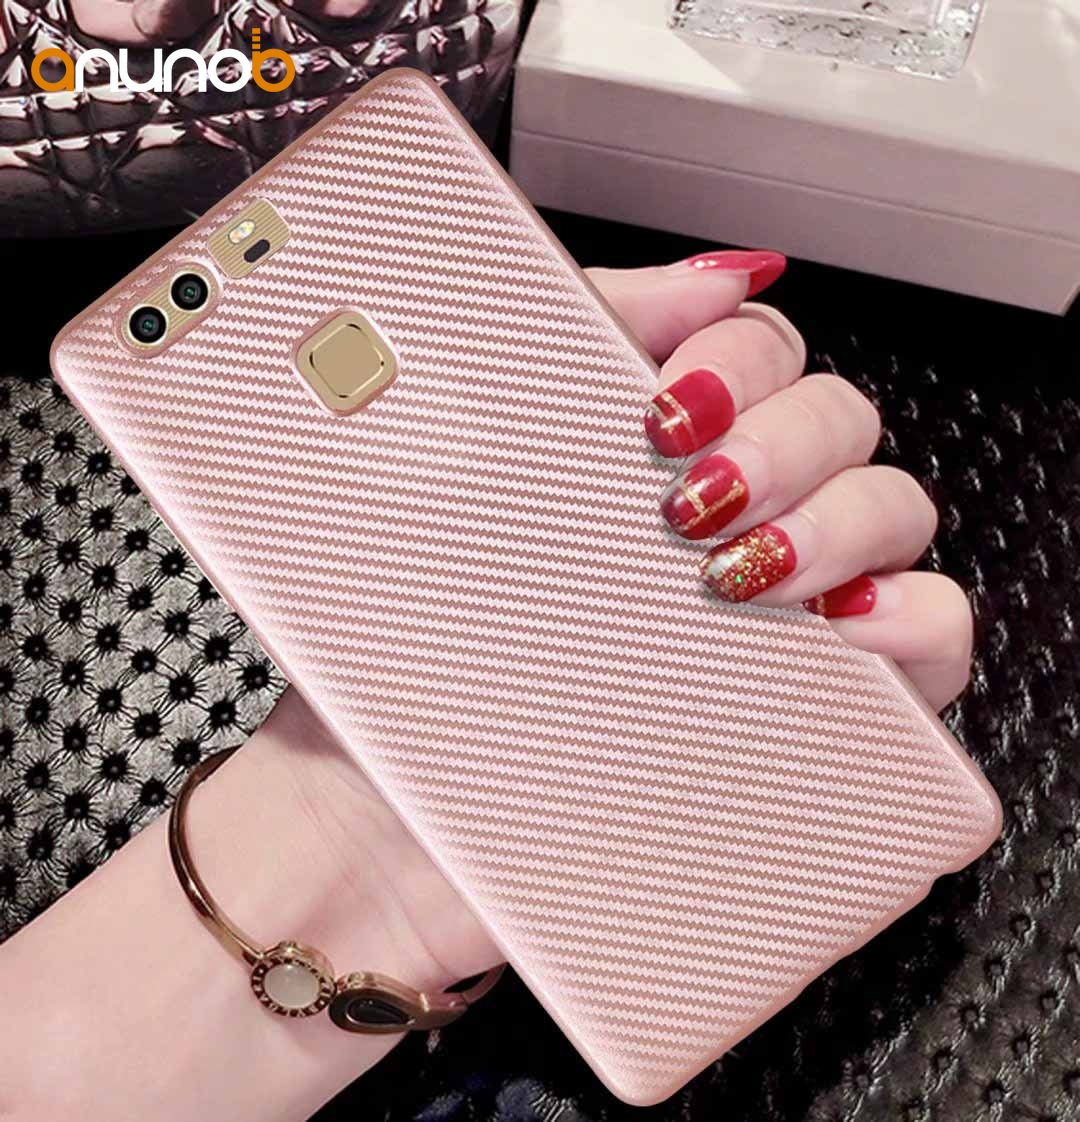 Phone Silicon Case For Huawei P20 Lite Case Fiber Cover For Huawei P20 Pro P8 P9 P10 Lite Mini Plus Y3 Y5 Y6 ii 2017 Cover